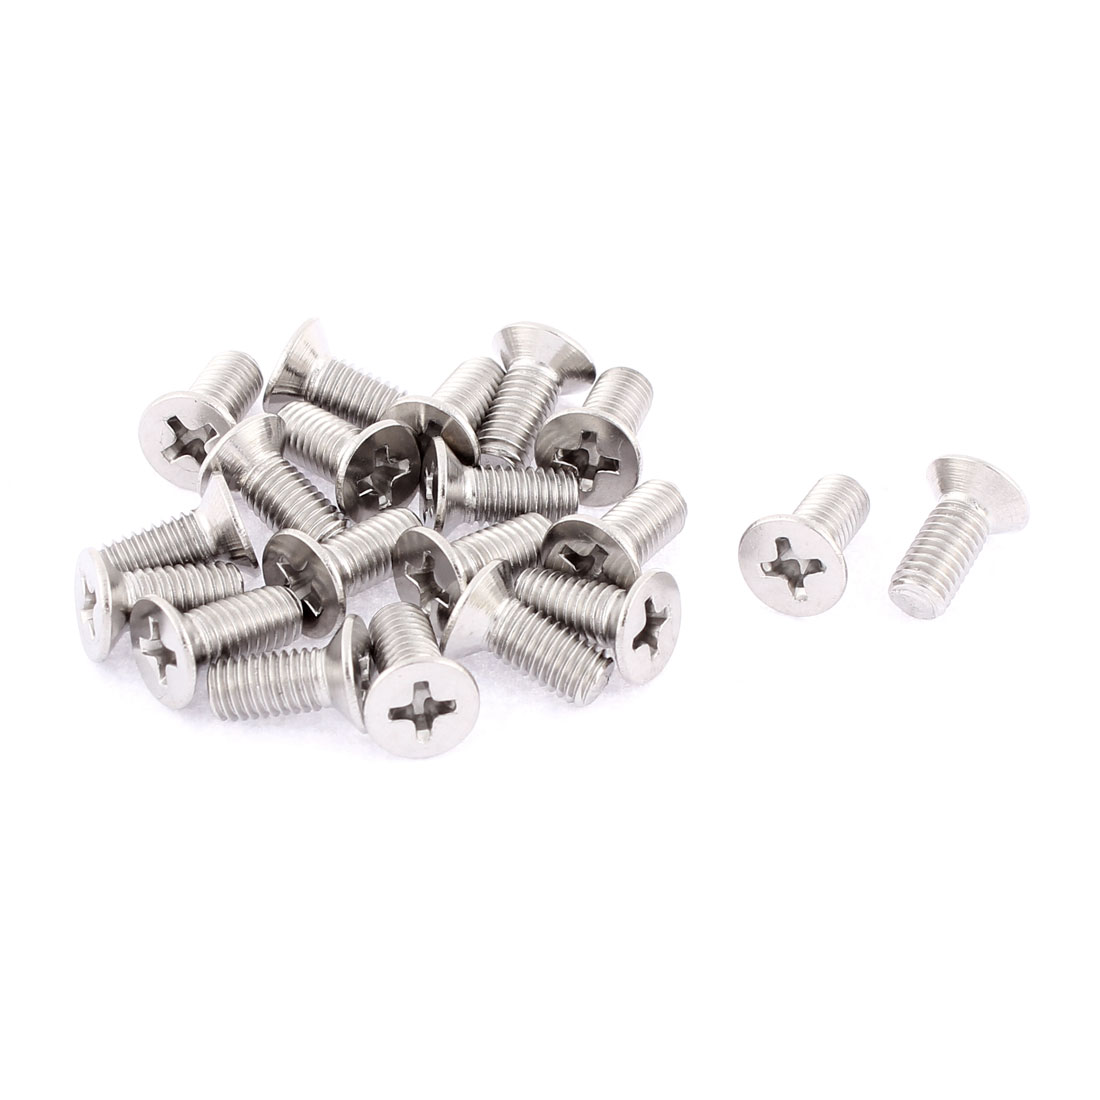 M5 x 12mm Phillips Round Head Stainless Steel Countersunk Bolts Screws 20 Pcs